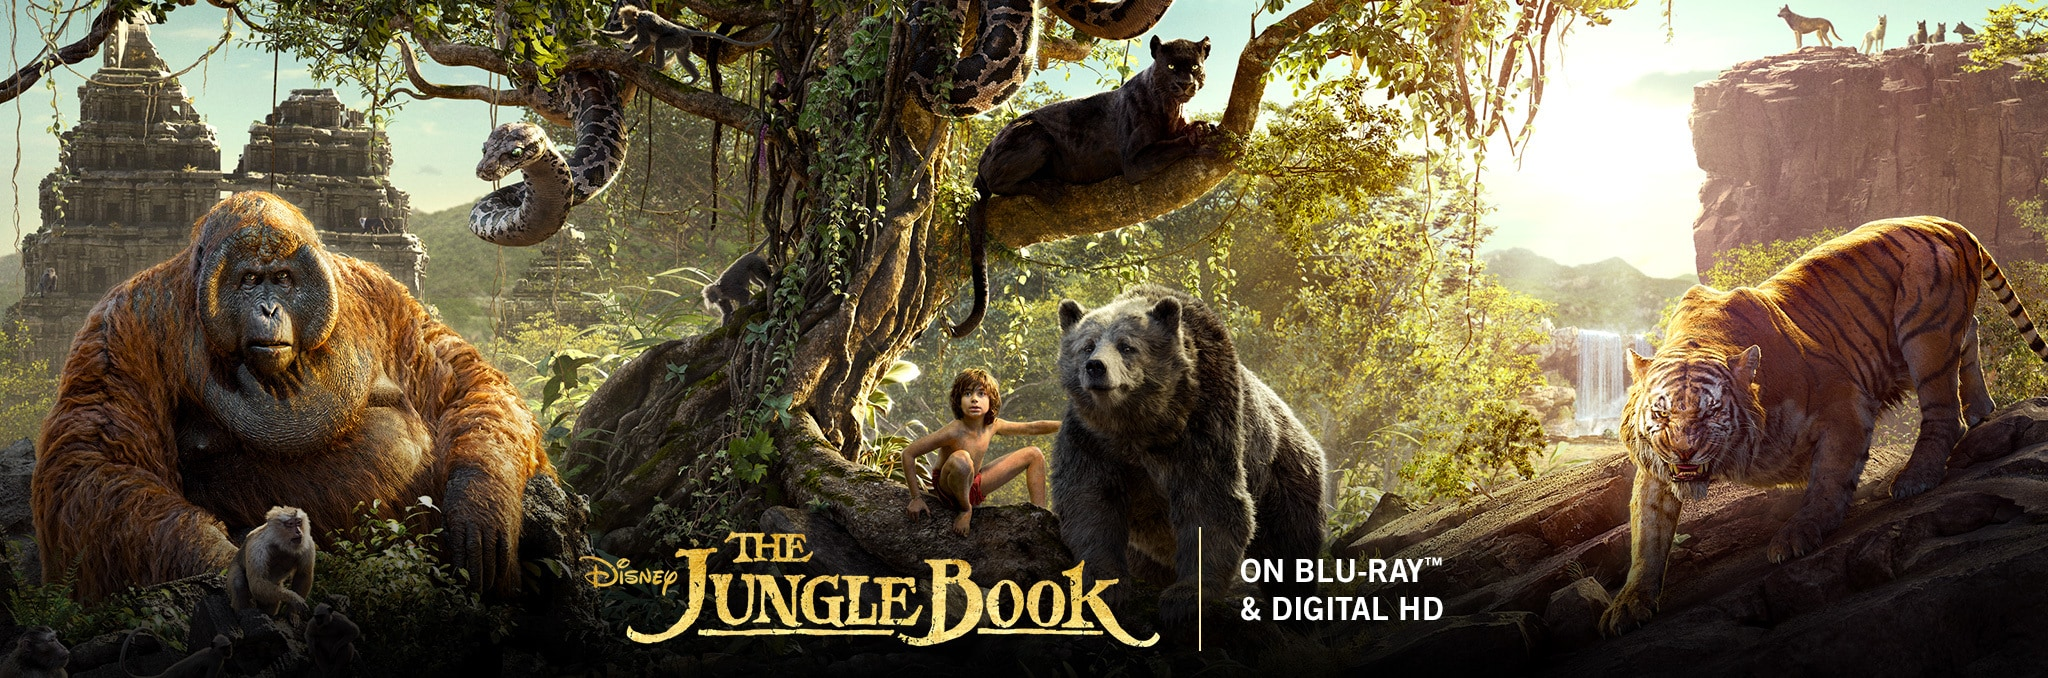 The Jungle Book Official Hindi Trailer 2